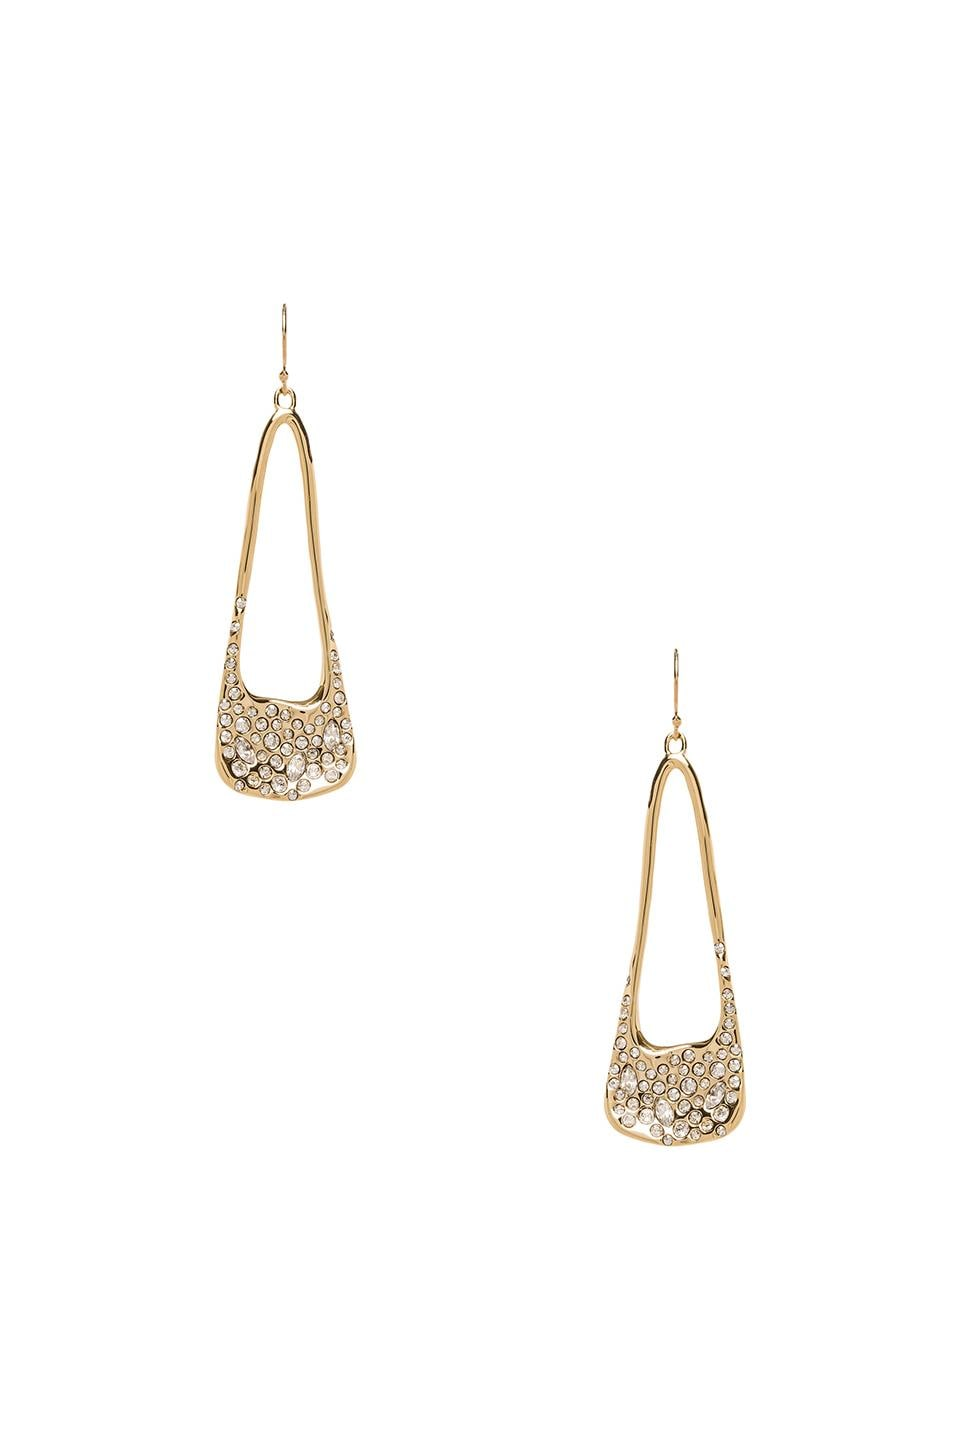 Alexis Bittar Liquid Crystal Encrusted Elongated Tear Earring in Gold